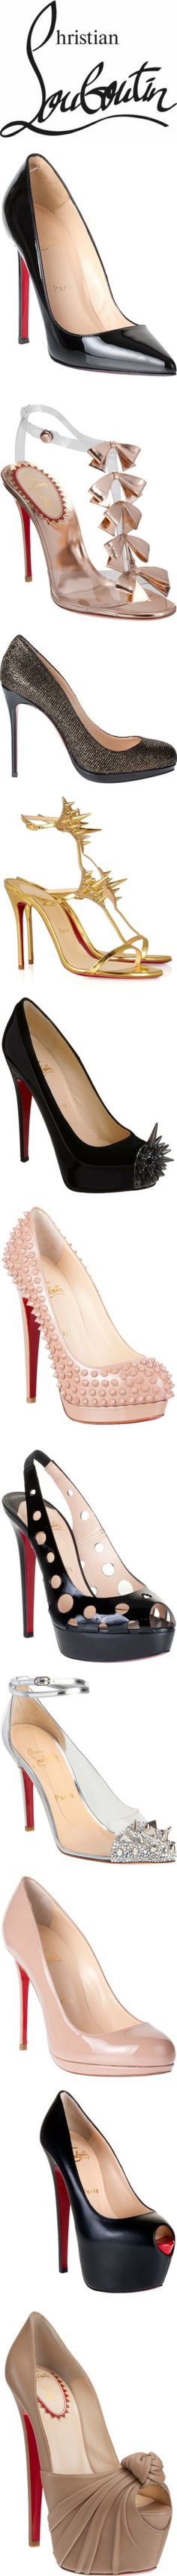 Christian Louboutin  Only in my dreams...and on my pinterest board :)